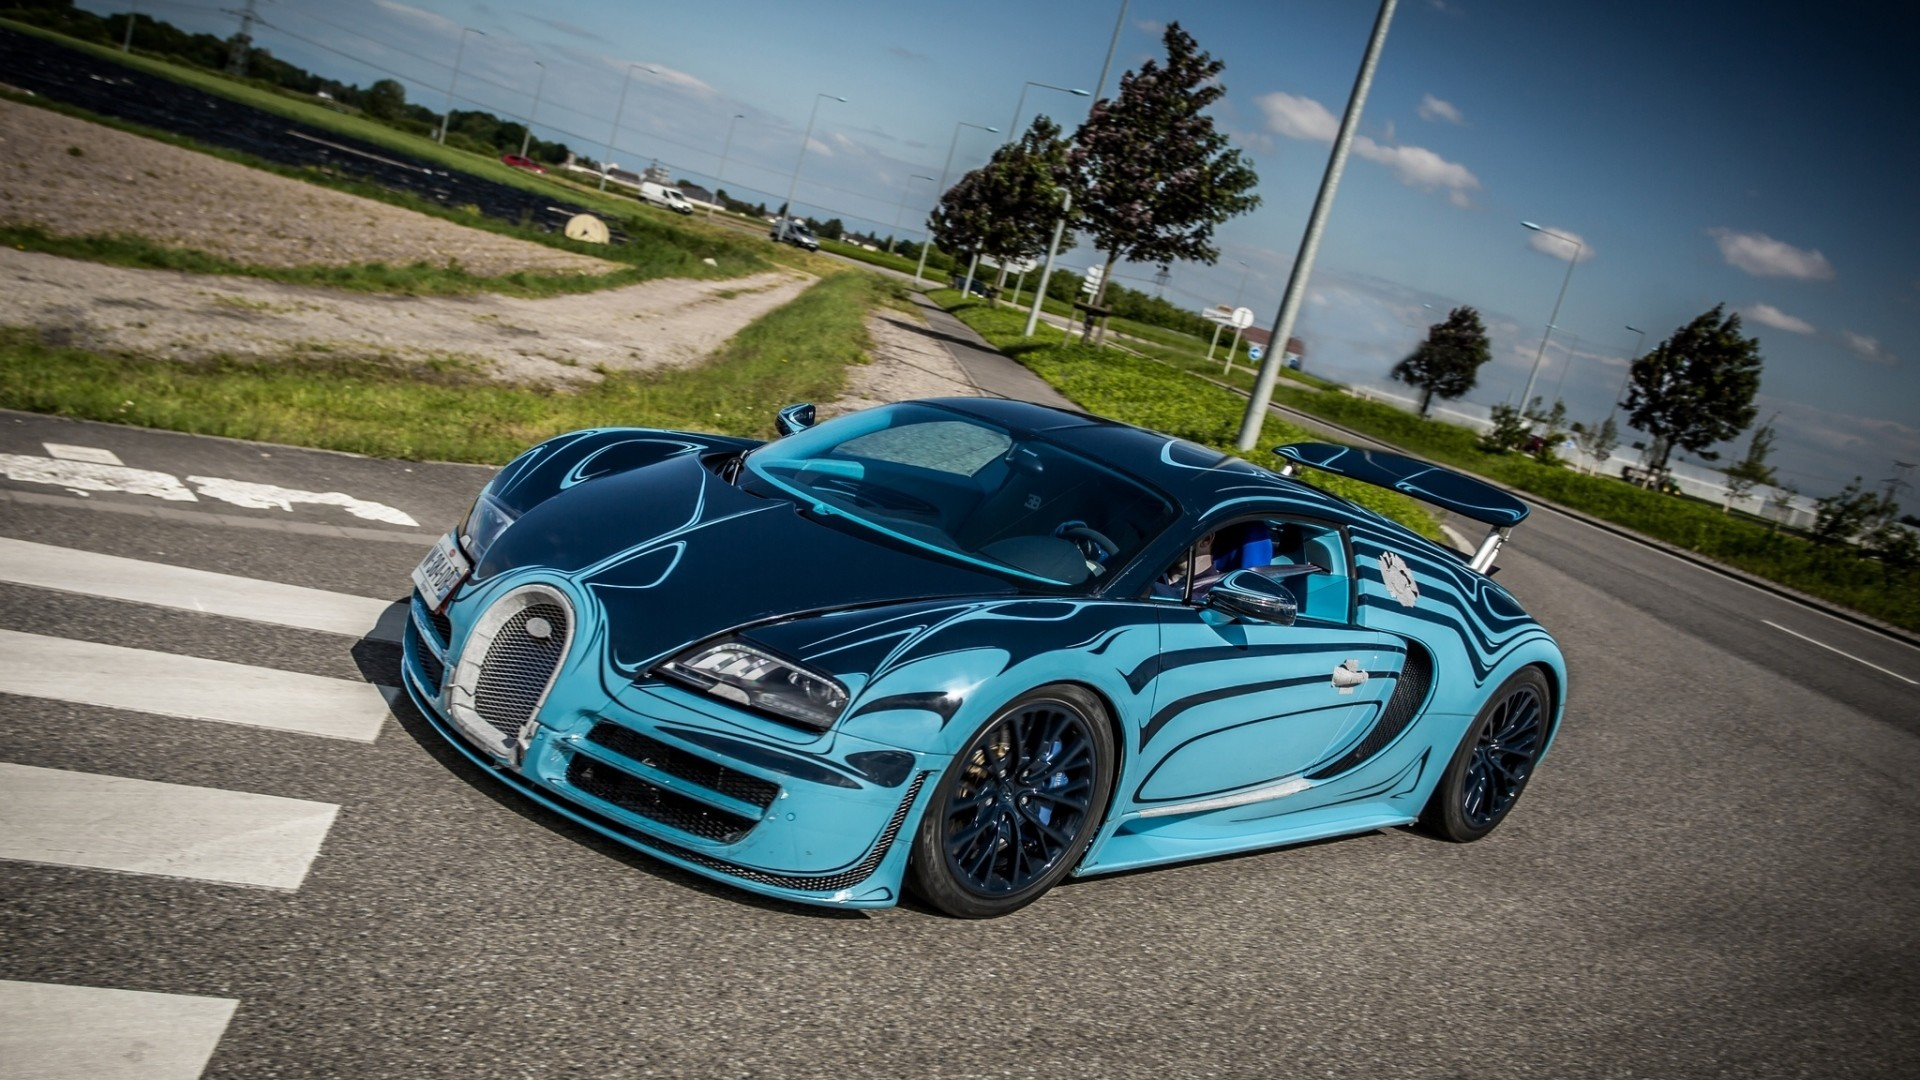 Sport Wallpaper Bugatti Veyron: Bugatti Veyron Wallpapers ·①